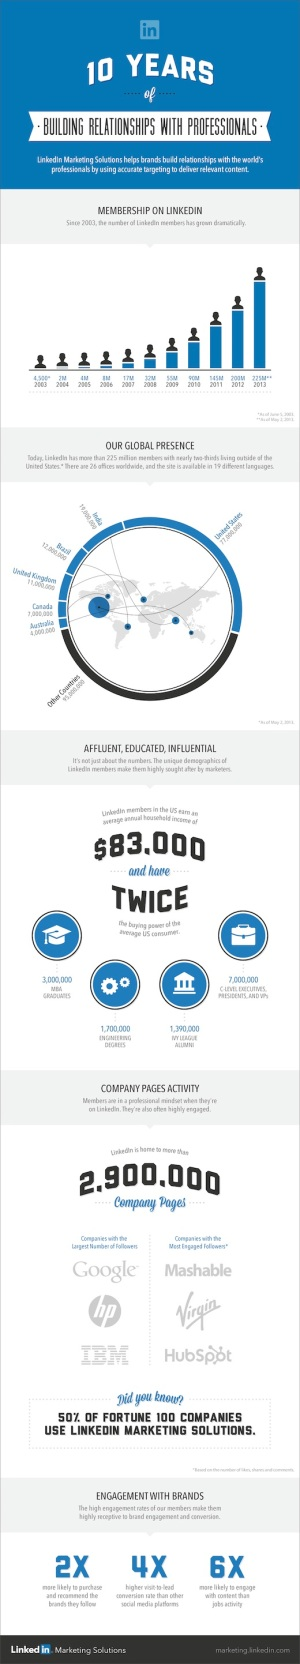 Linkedin-10th-Anniversary-Infographic